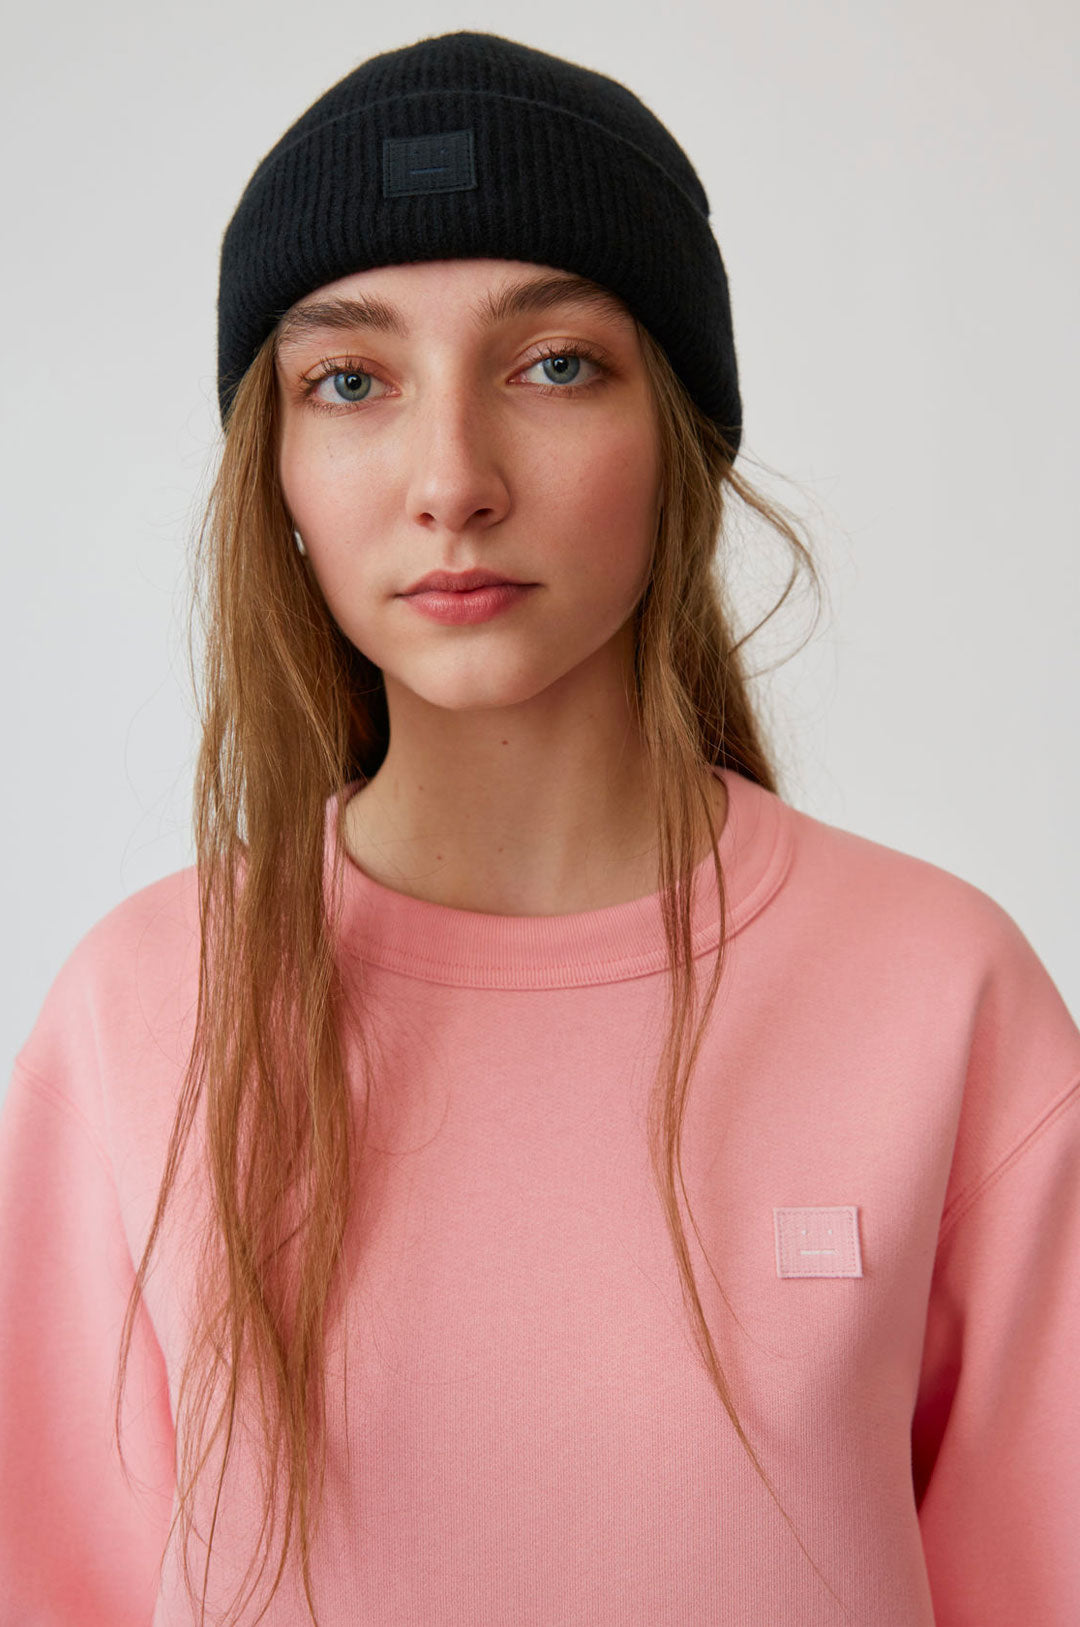 The Face by Acne Studios exclusively at Camargue in Brisbane